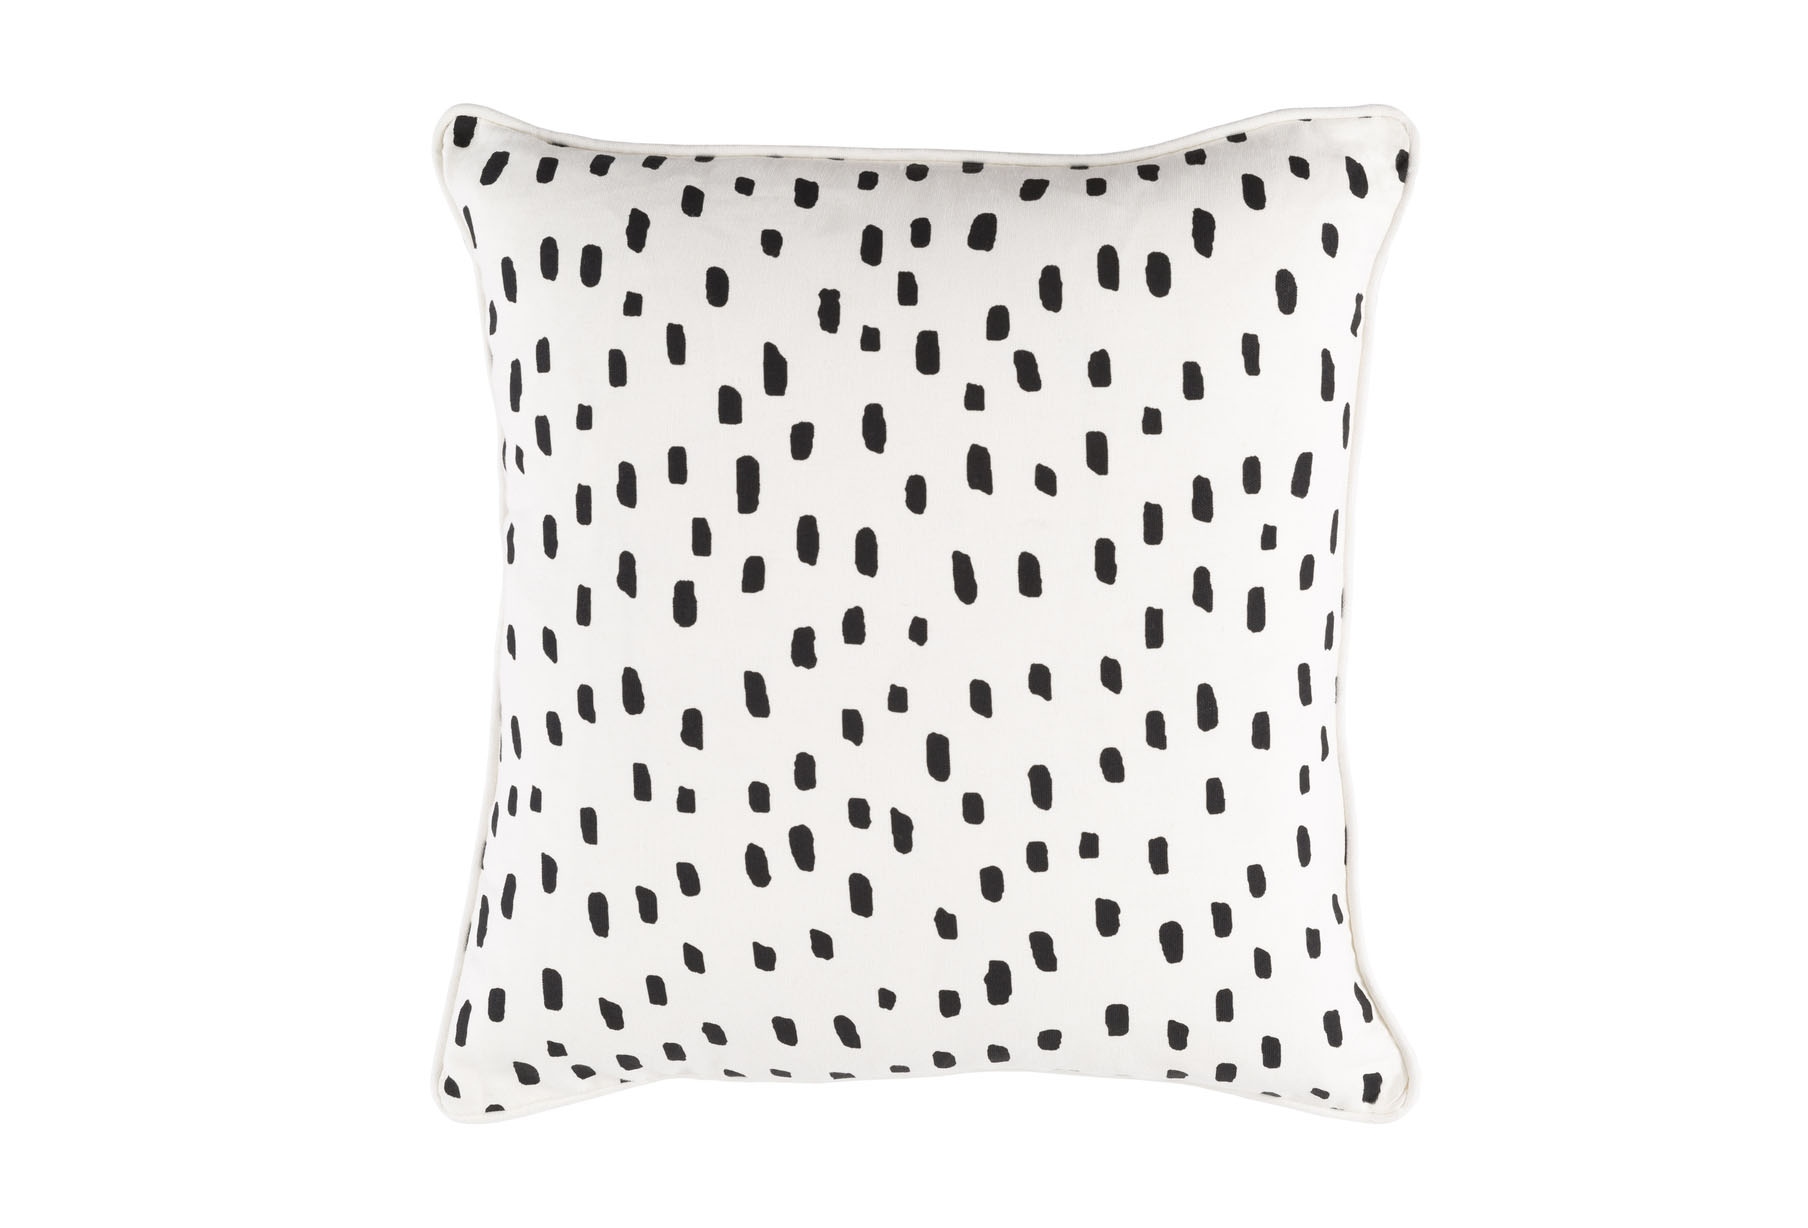 Dalmatian Pillow in Black